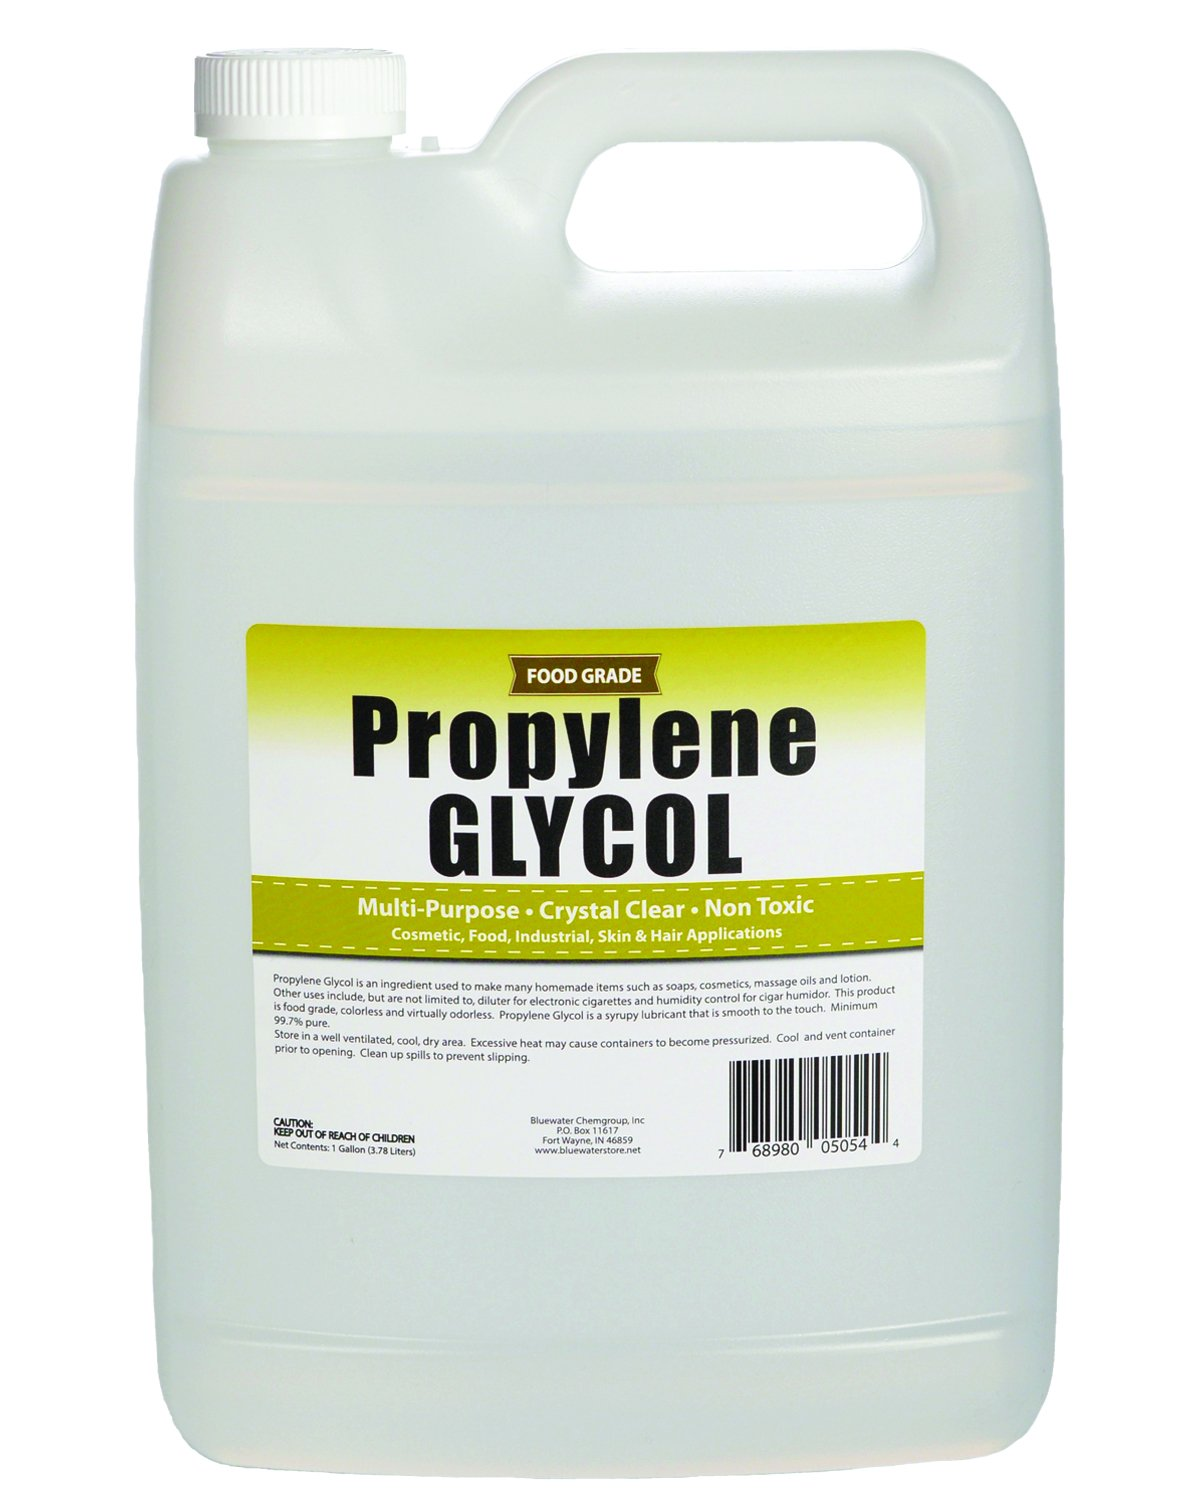 Sanco Industries Propylene Glycol - 1 Gallon - USP Certified Food Grade - Highest Purity, Humectant, Fog Machine, Humidor & Antifreeze Solution, DIY, Kosher